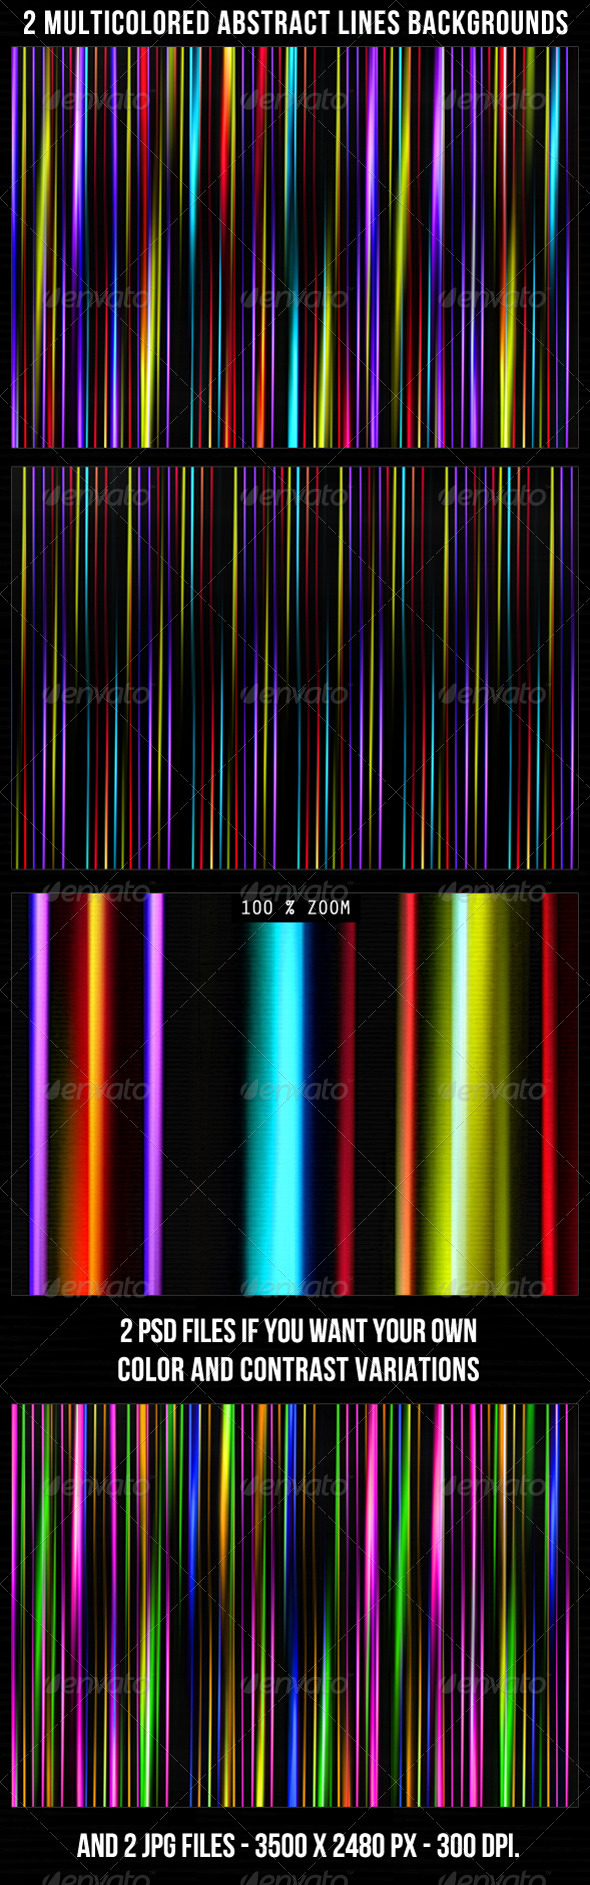 GraphicRiver 2 Multicolored Abstract Backgrounds 4254606